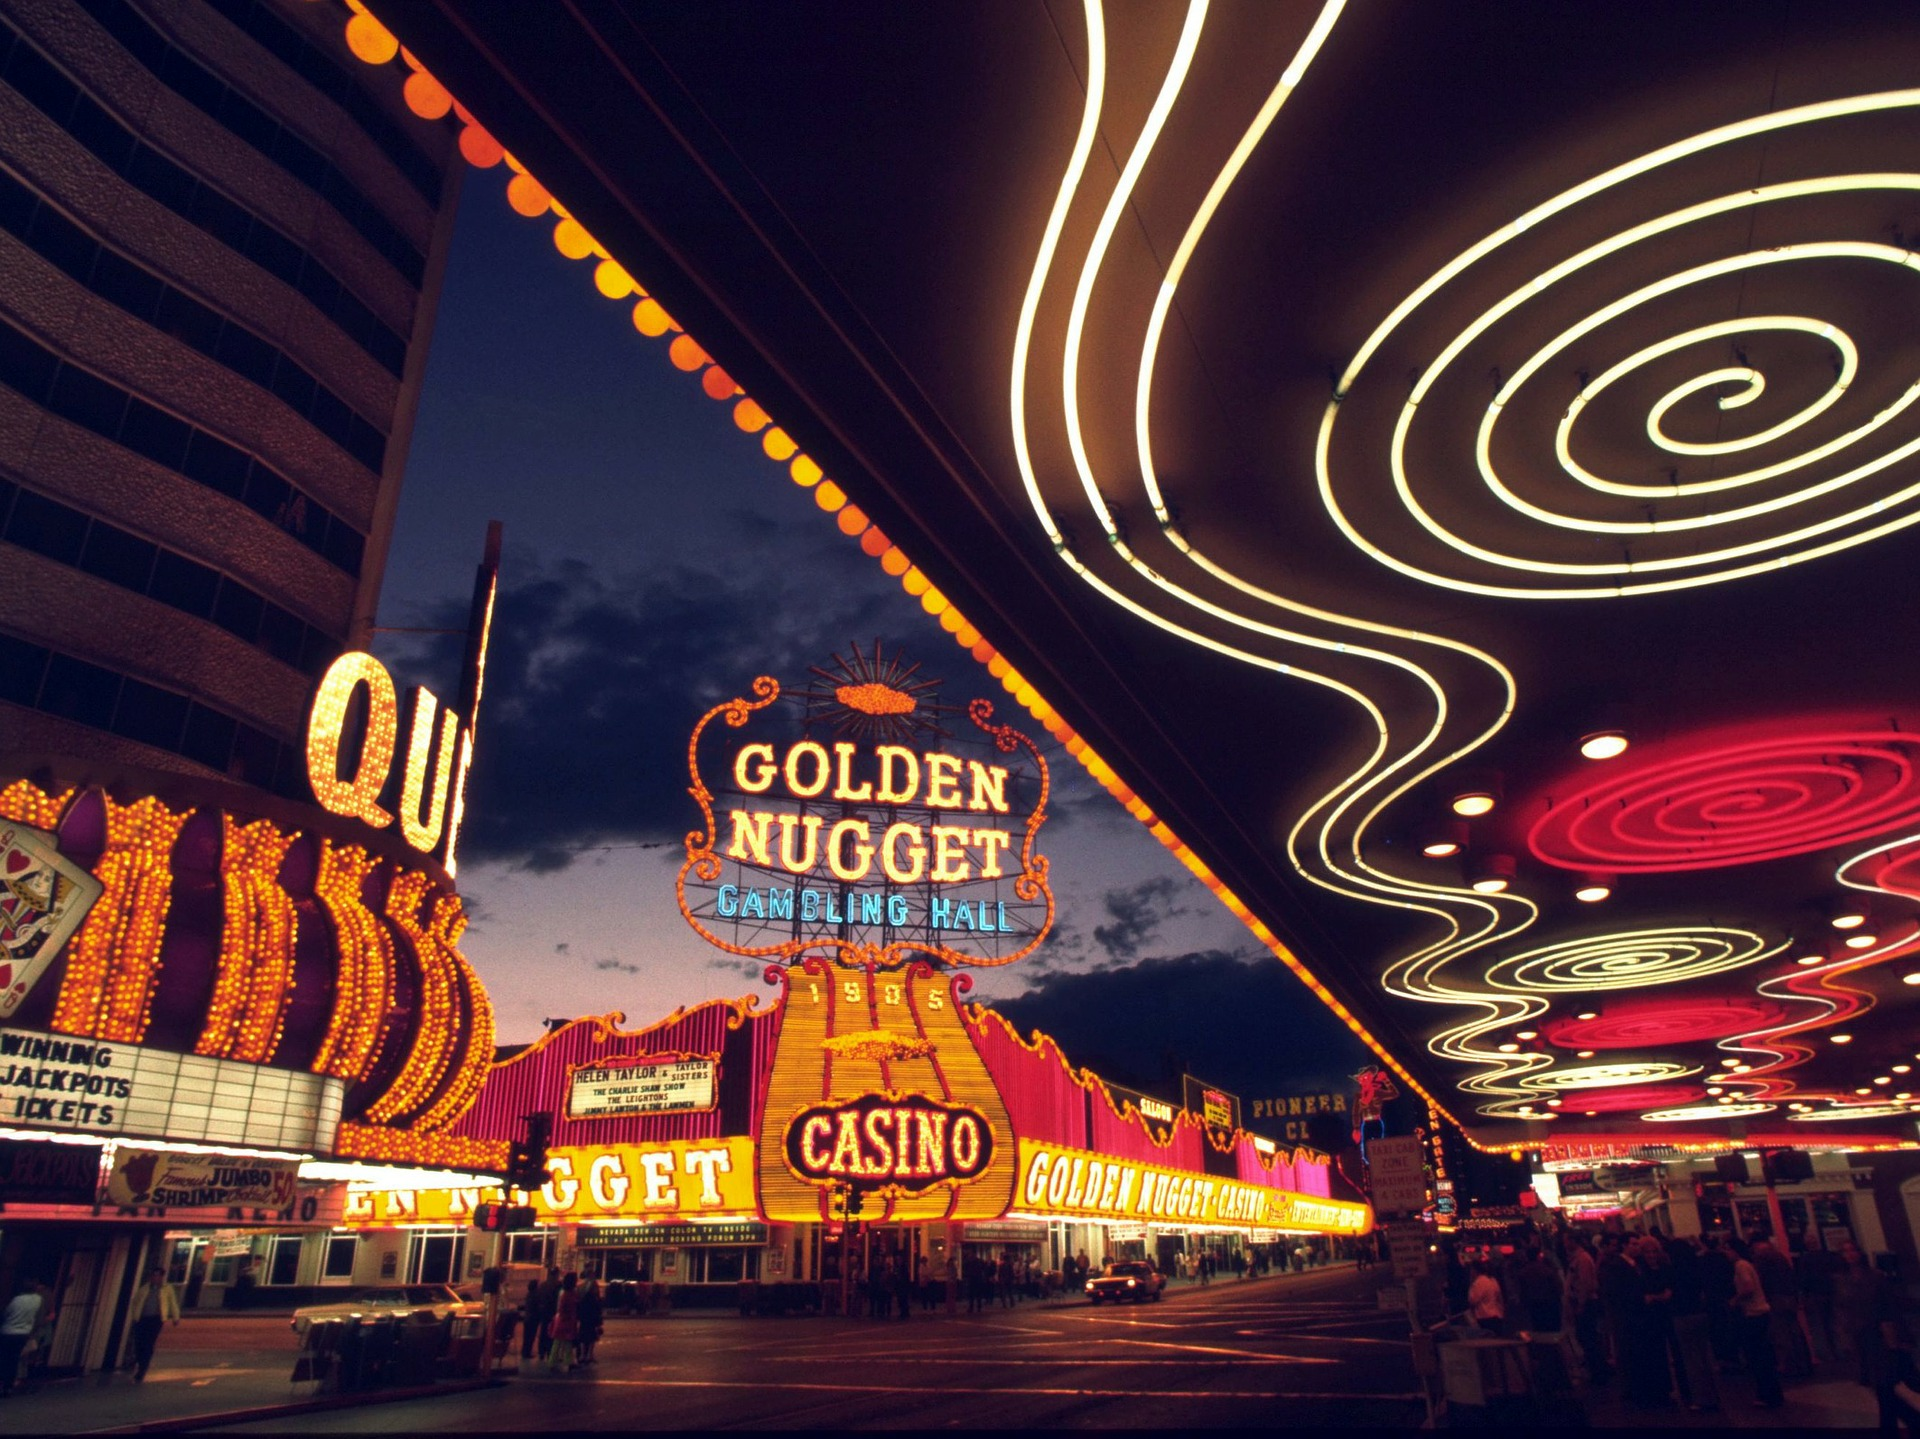 Golden Nugget revenue jumps by almost 50 percent in H1 '21